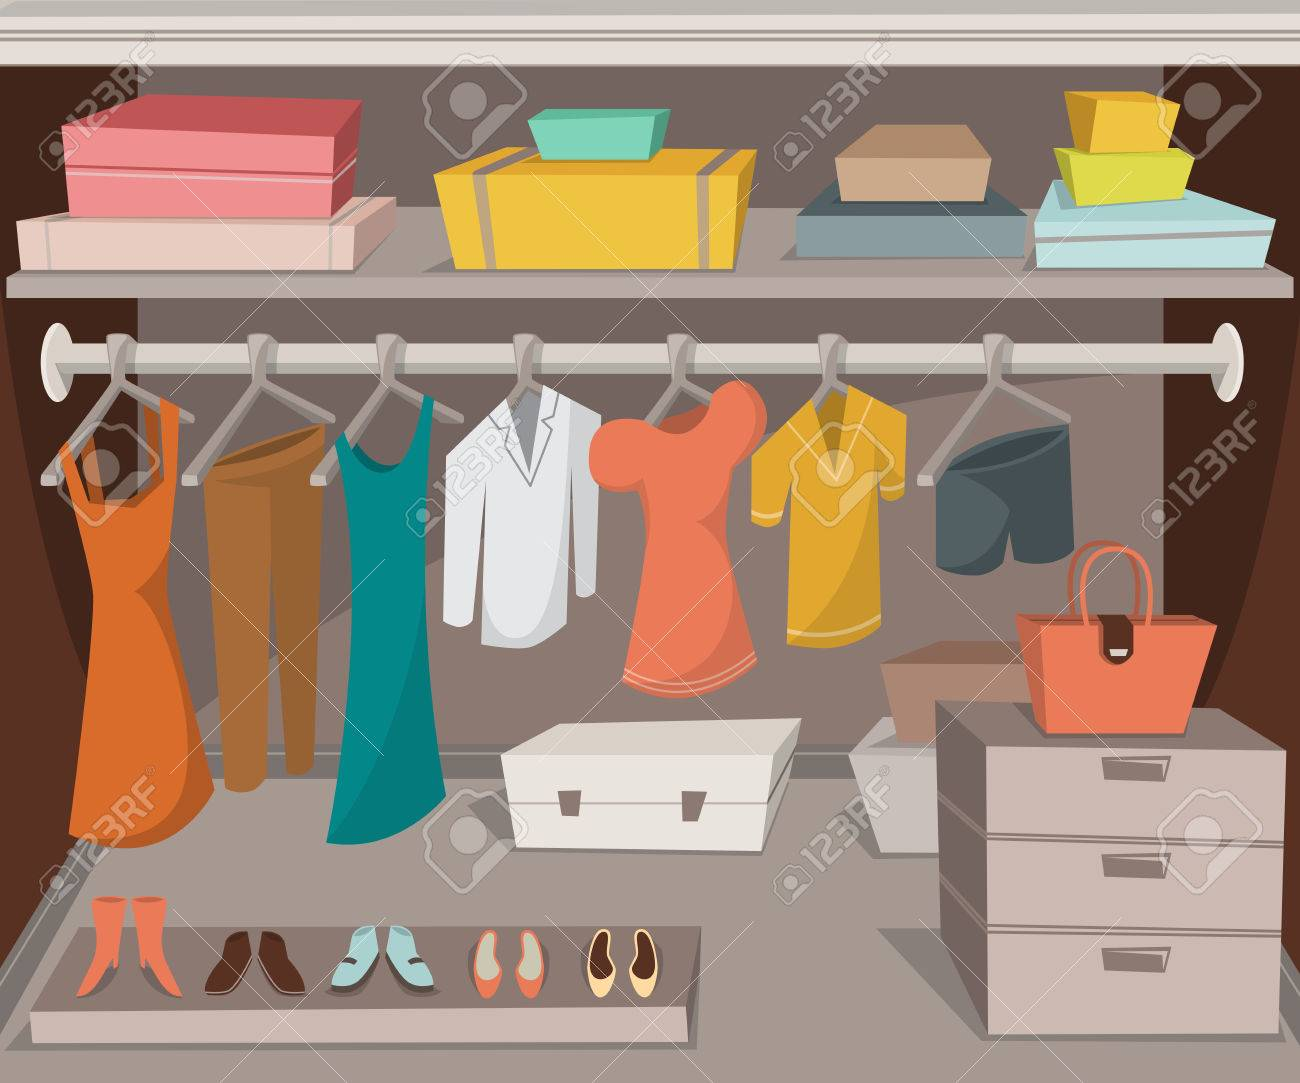 Wardrobe Room With Clothes Shoes And Boxes Cartoon Vector